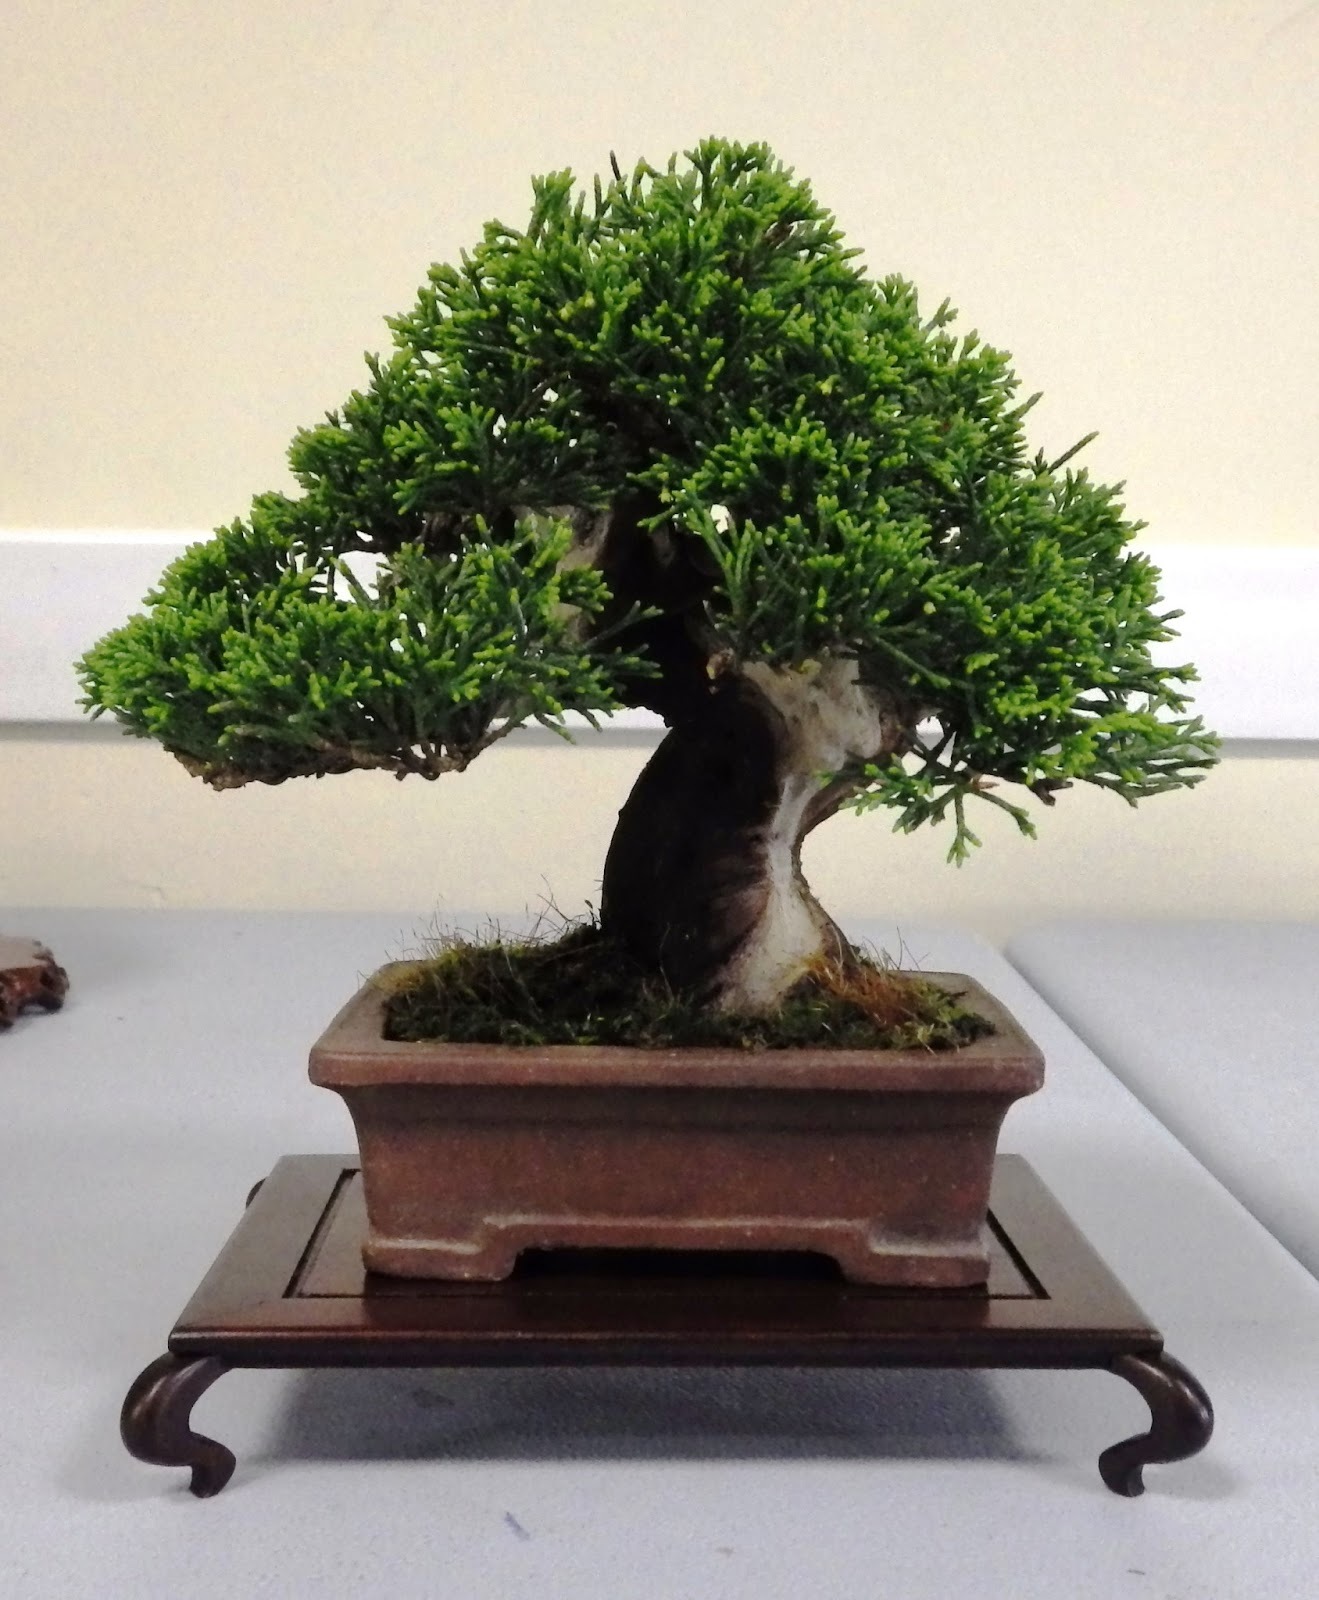 Bespoke Bonsai Stands May 2013